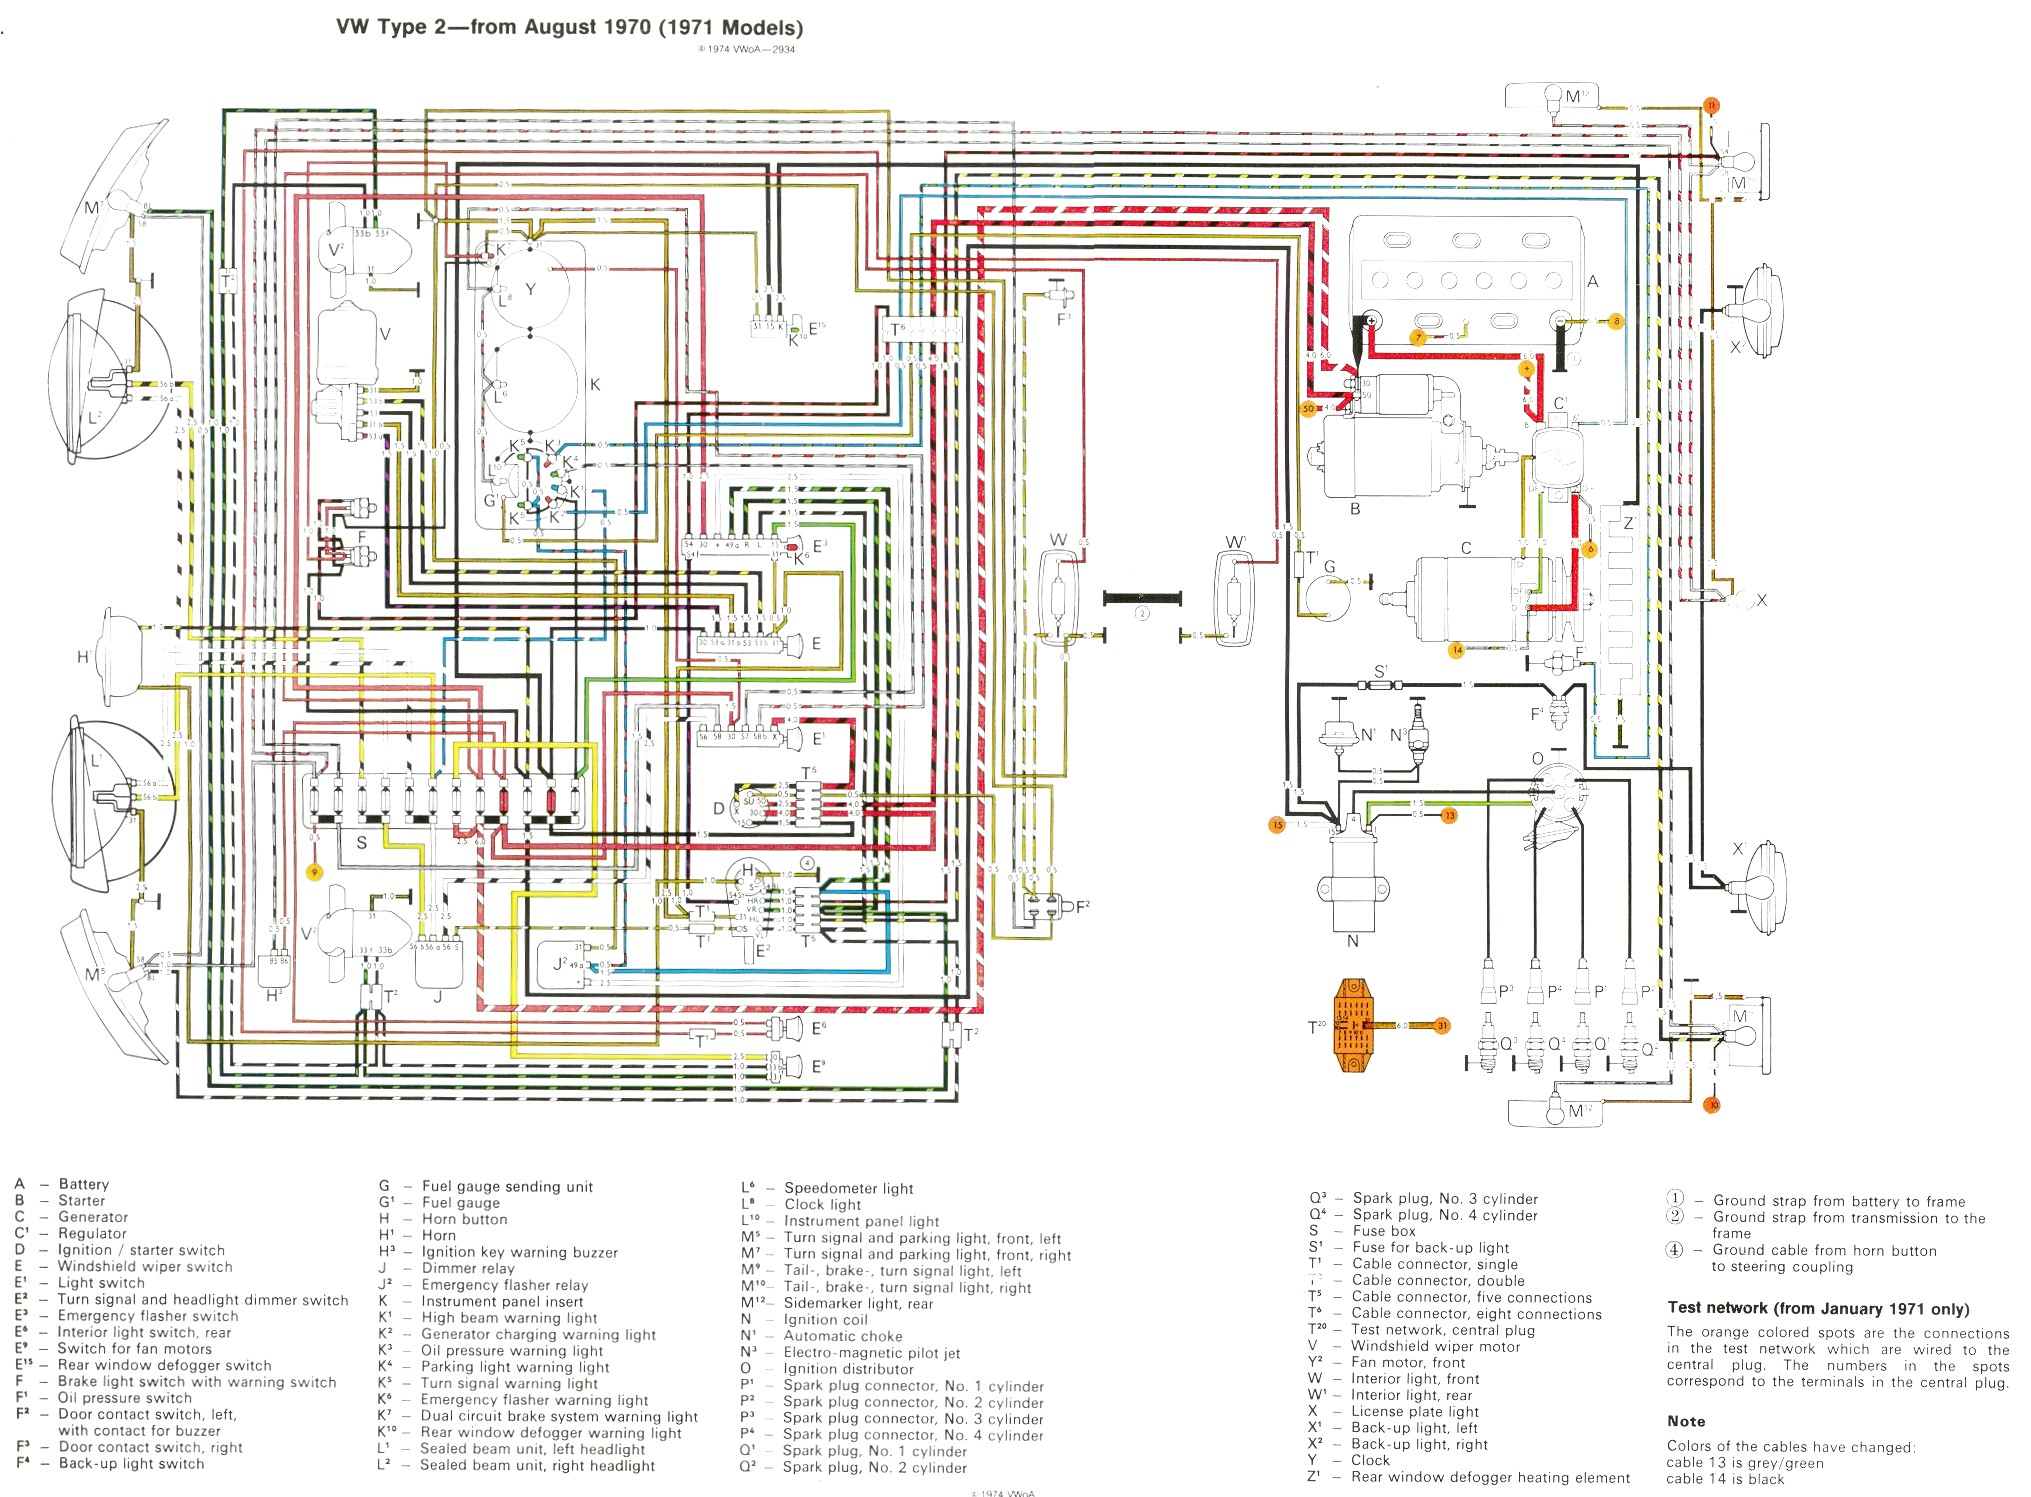 Vw Bus And Other Wiring Diagrams Ford F1 6 Volt Generator Diagram Com